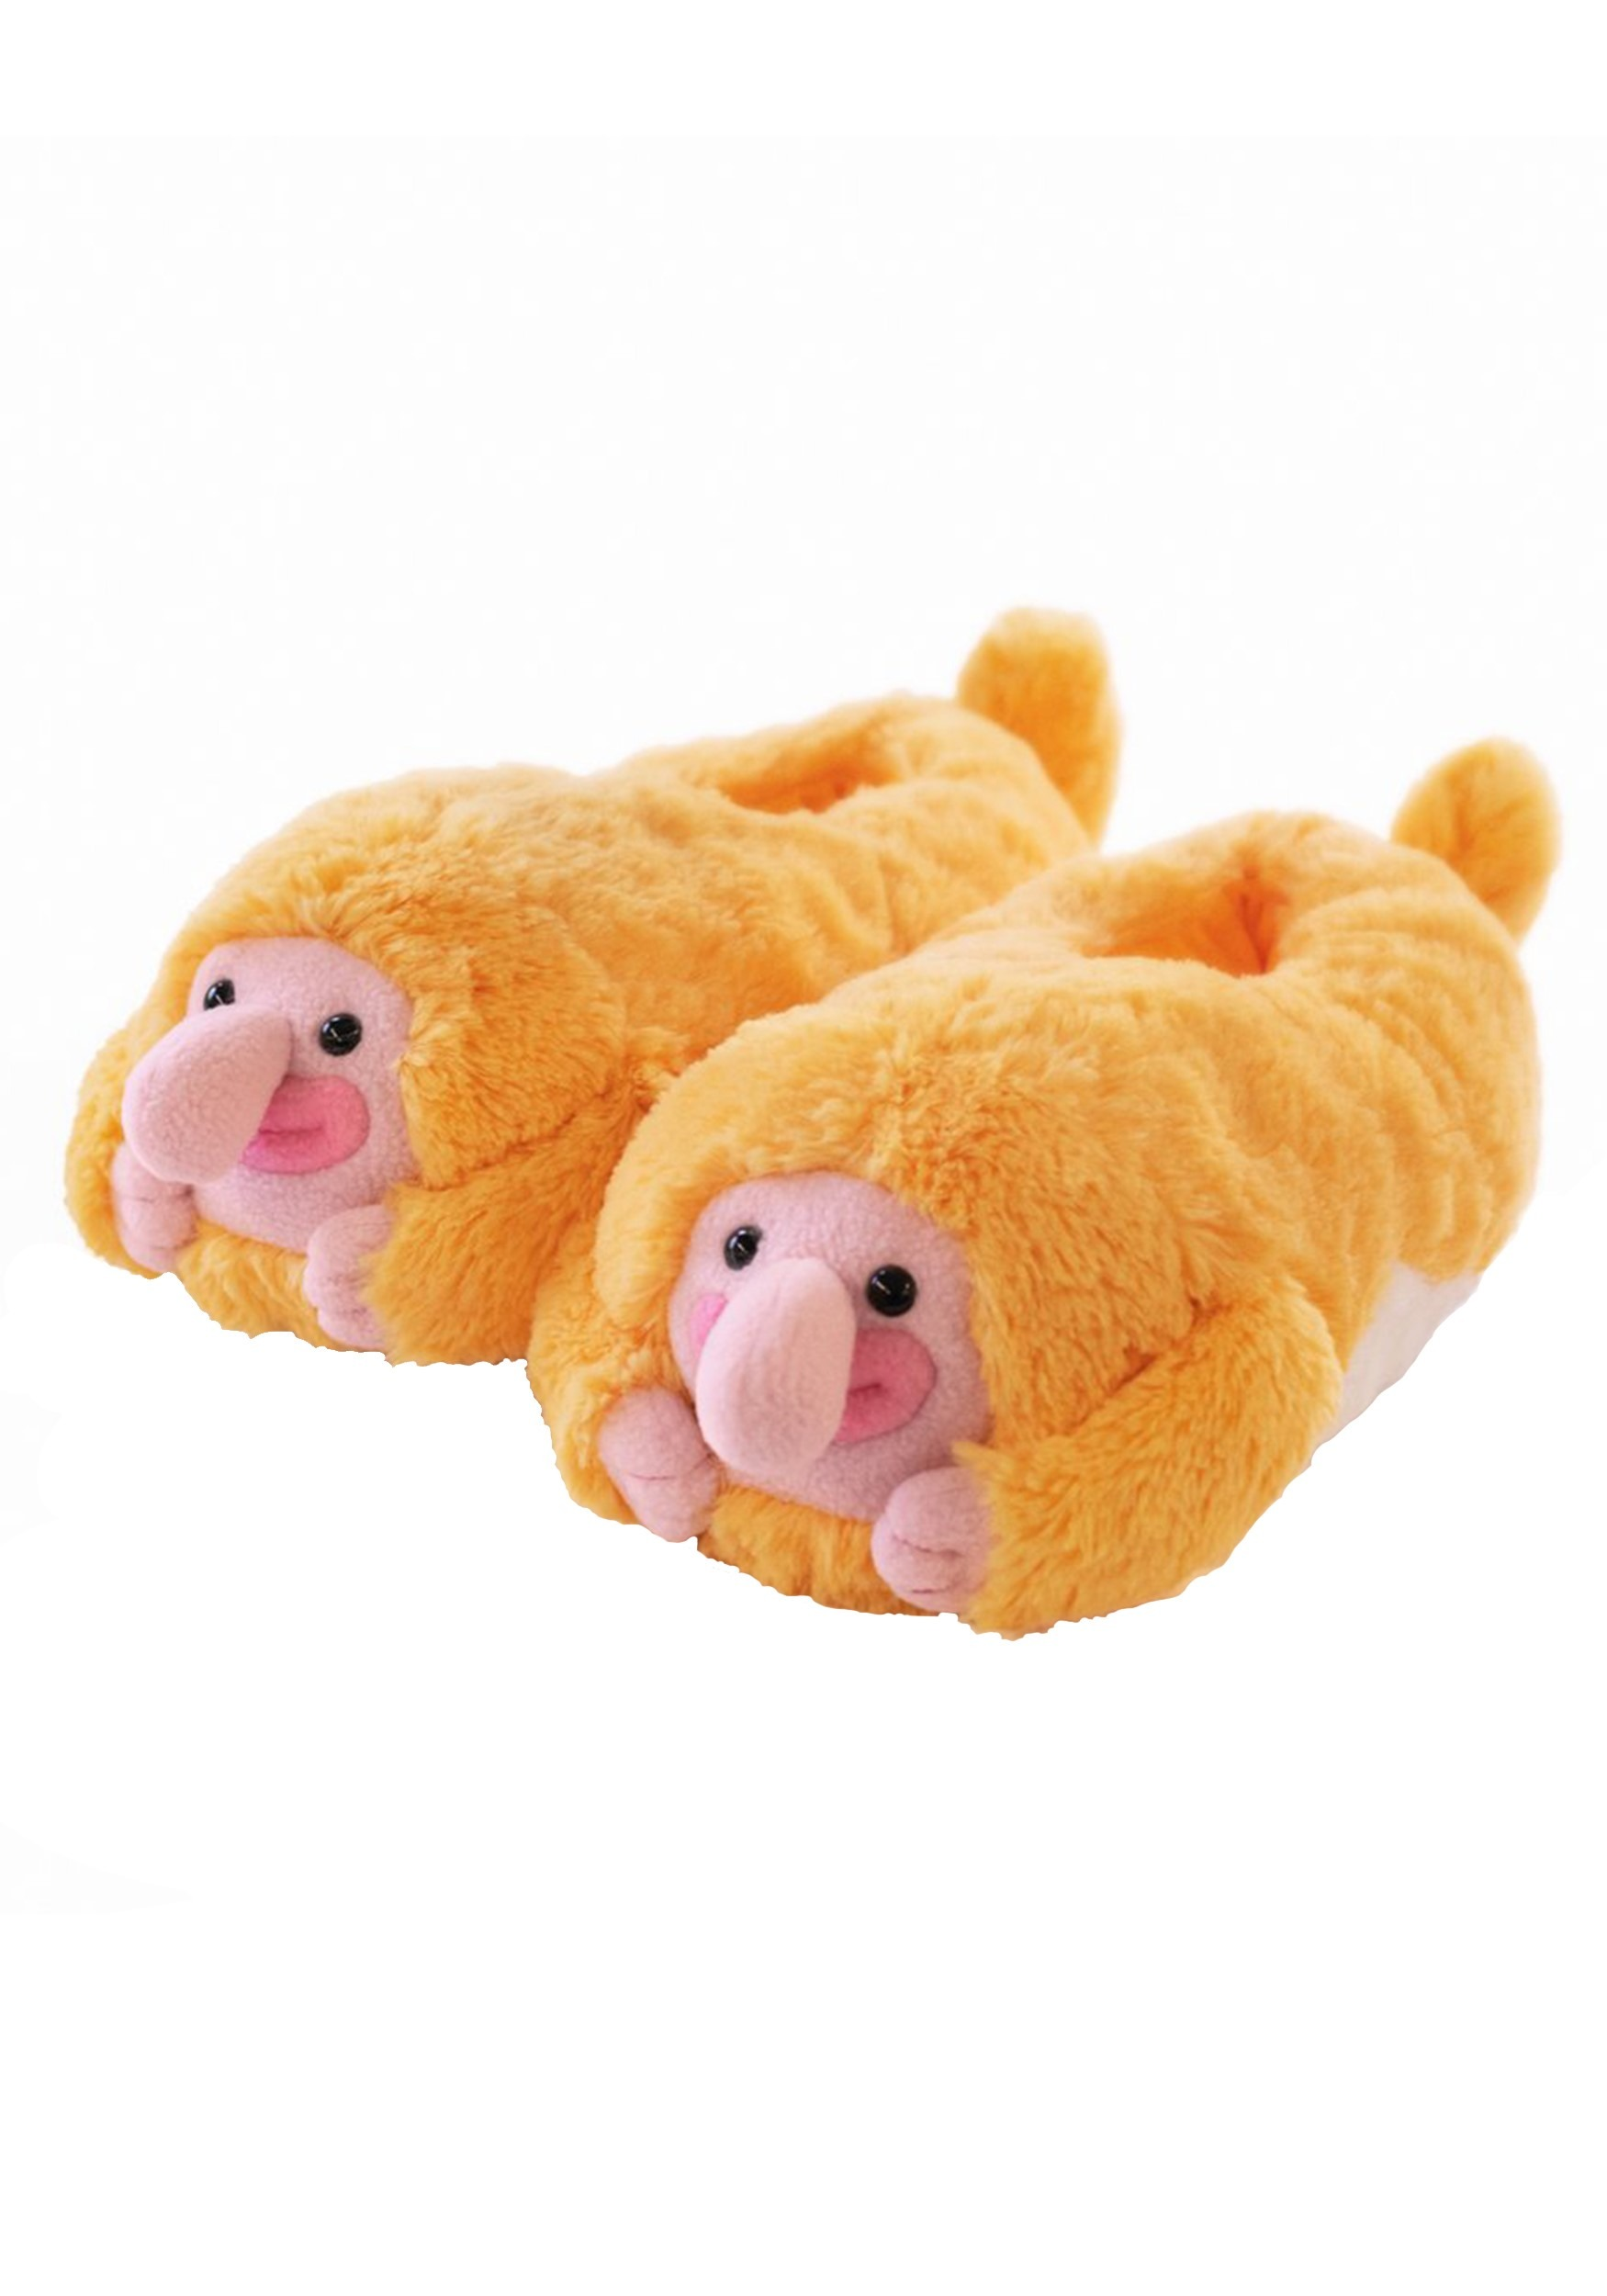 Proboscis Monkey Slippers for Adults